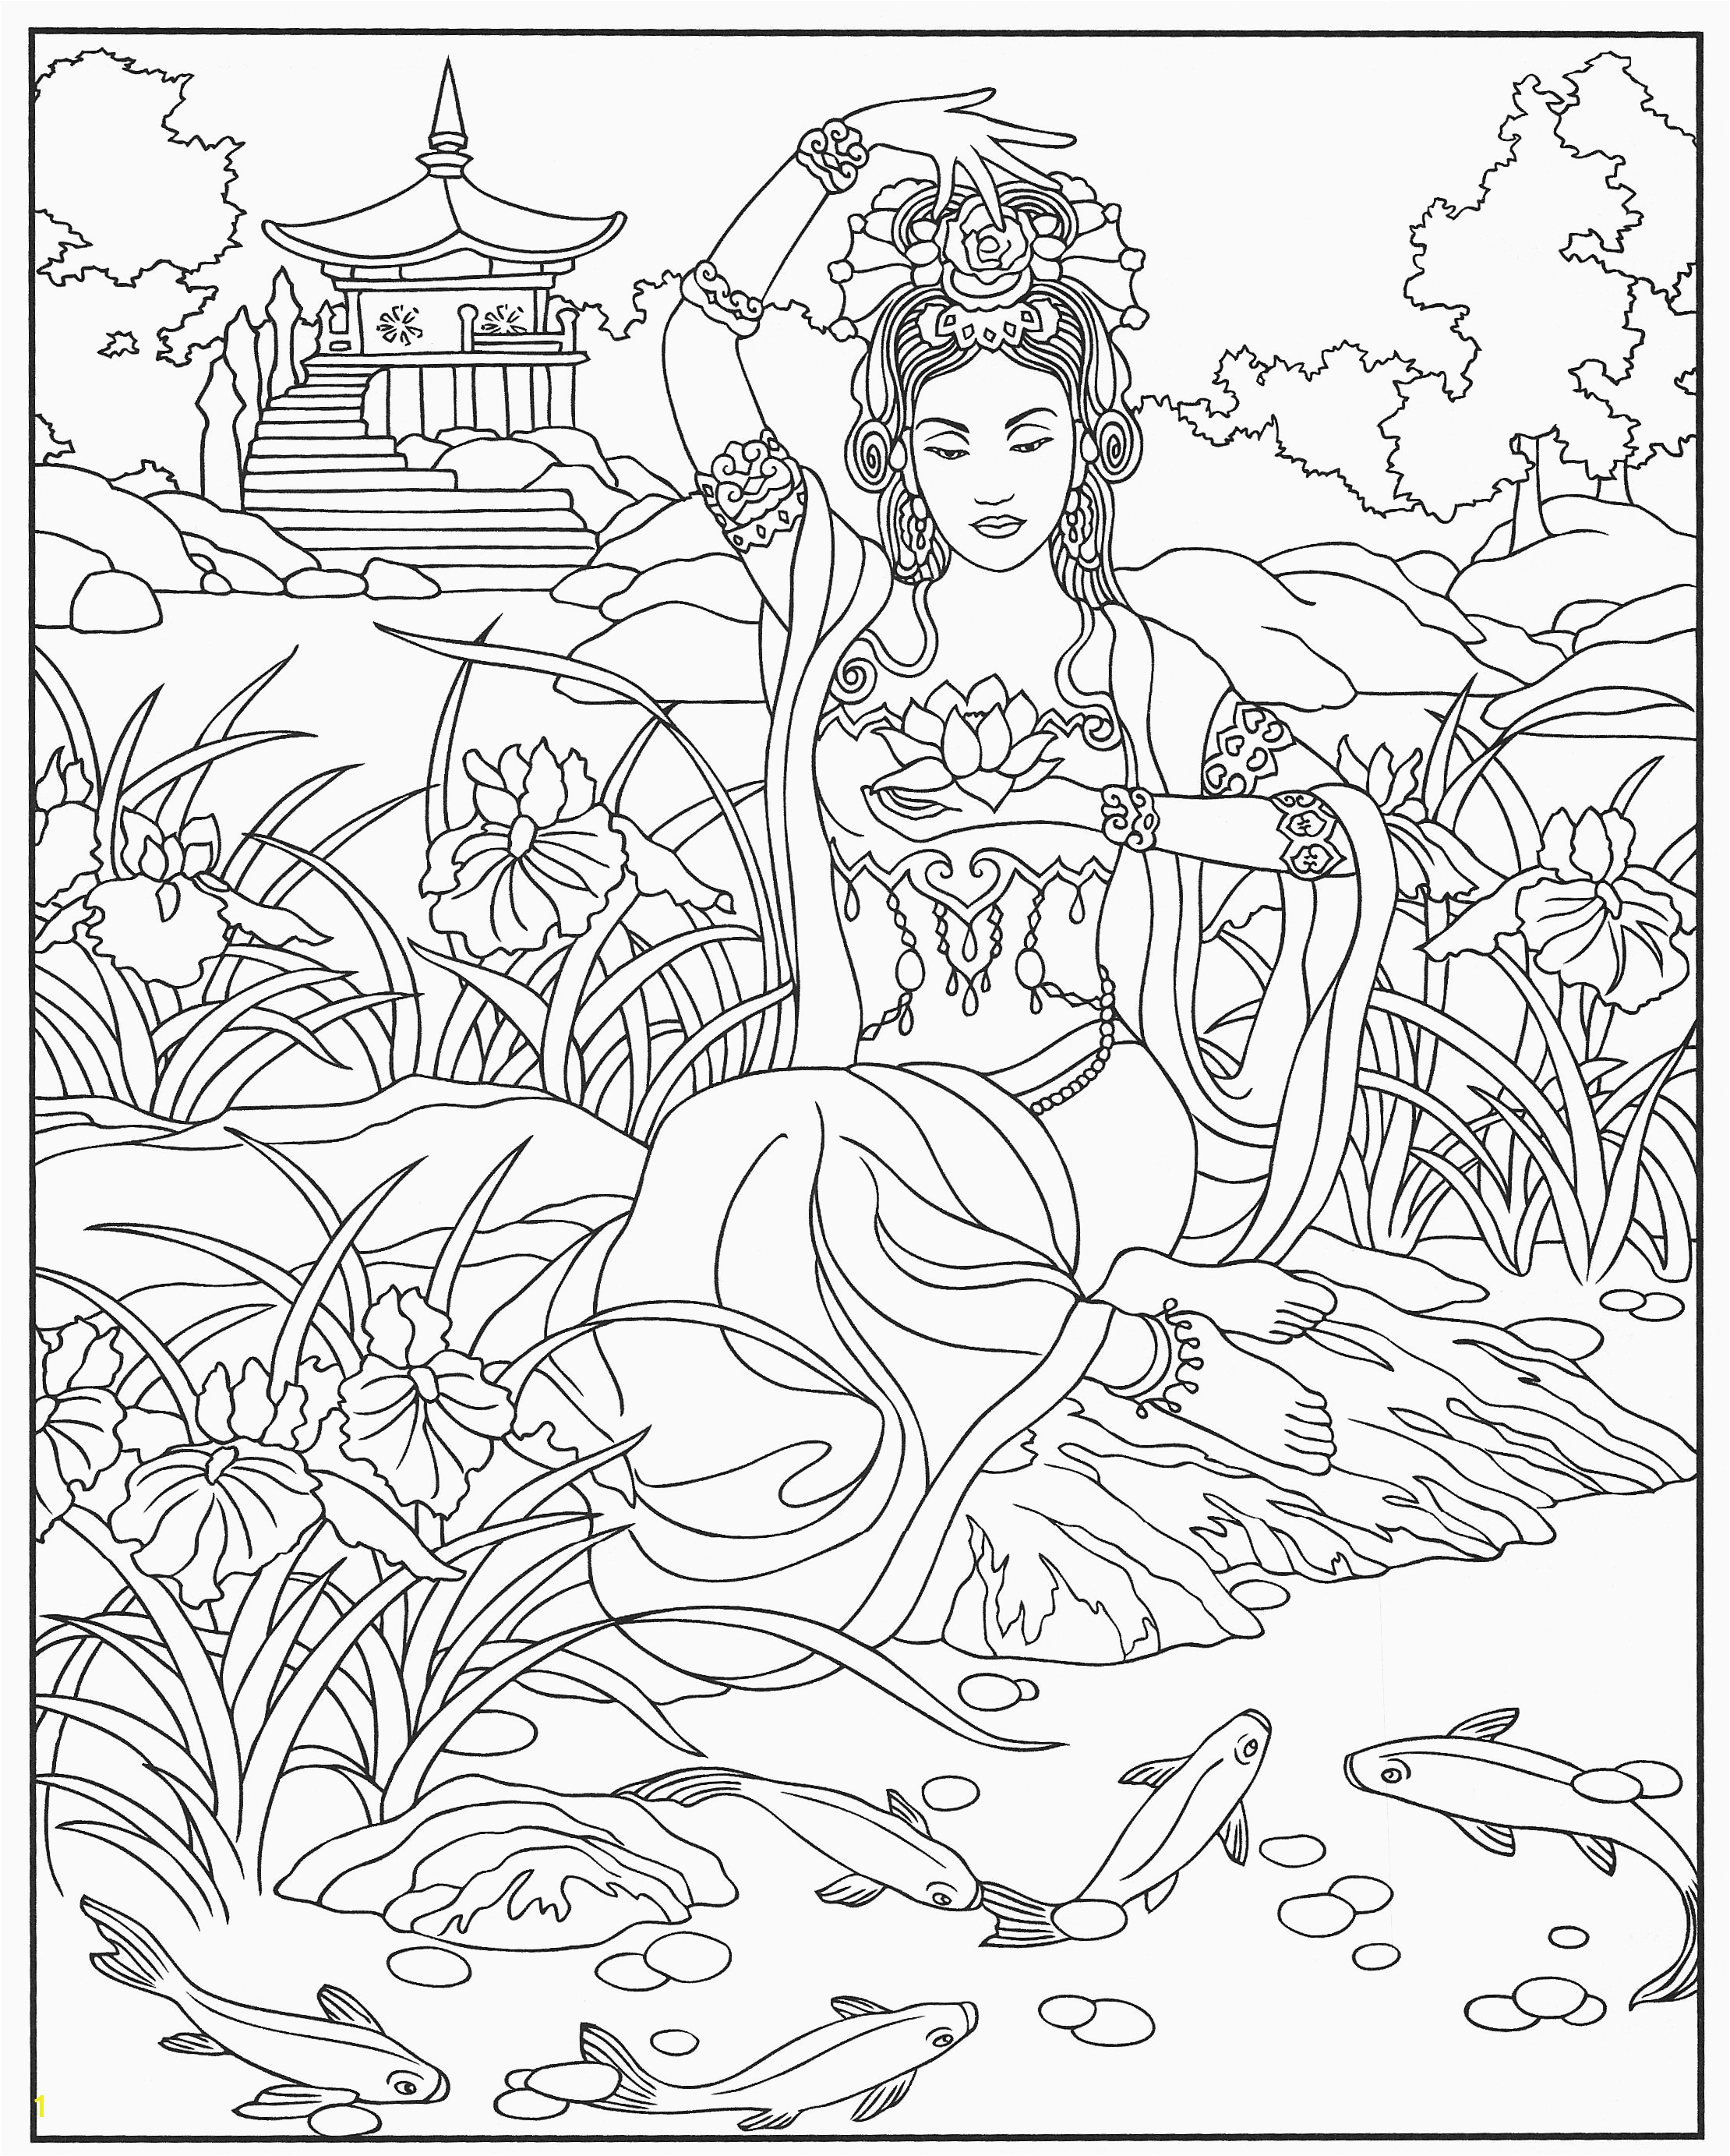 Detailed Coloring Pages for Teens Luxury Cool Coloring Page Unique Witch Coloring Pages New Crayola Pages